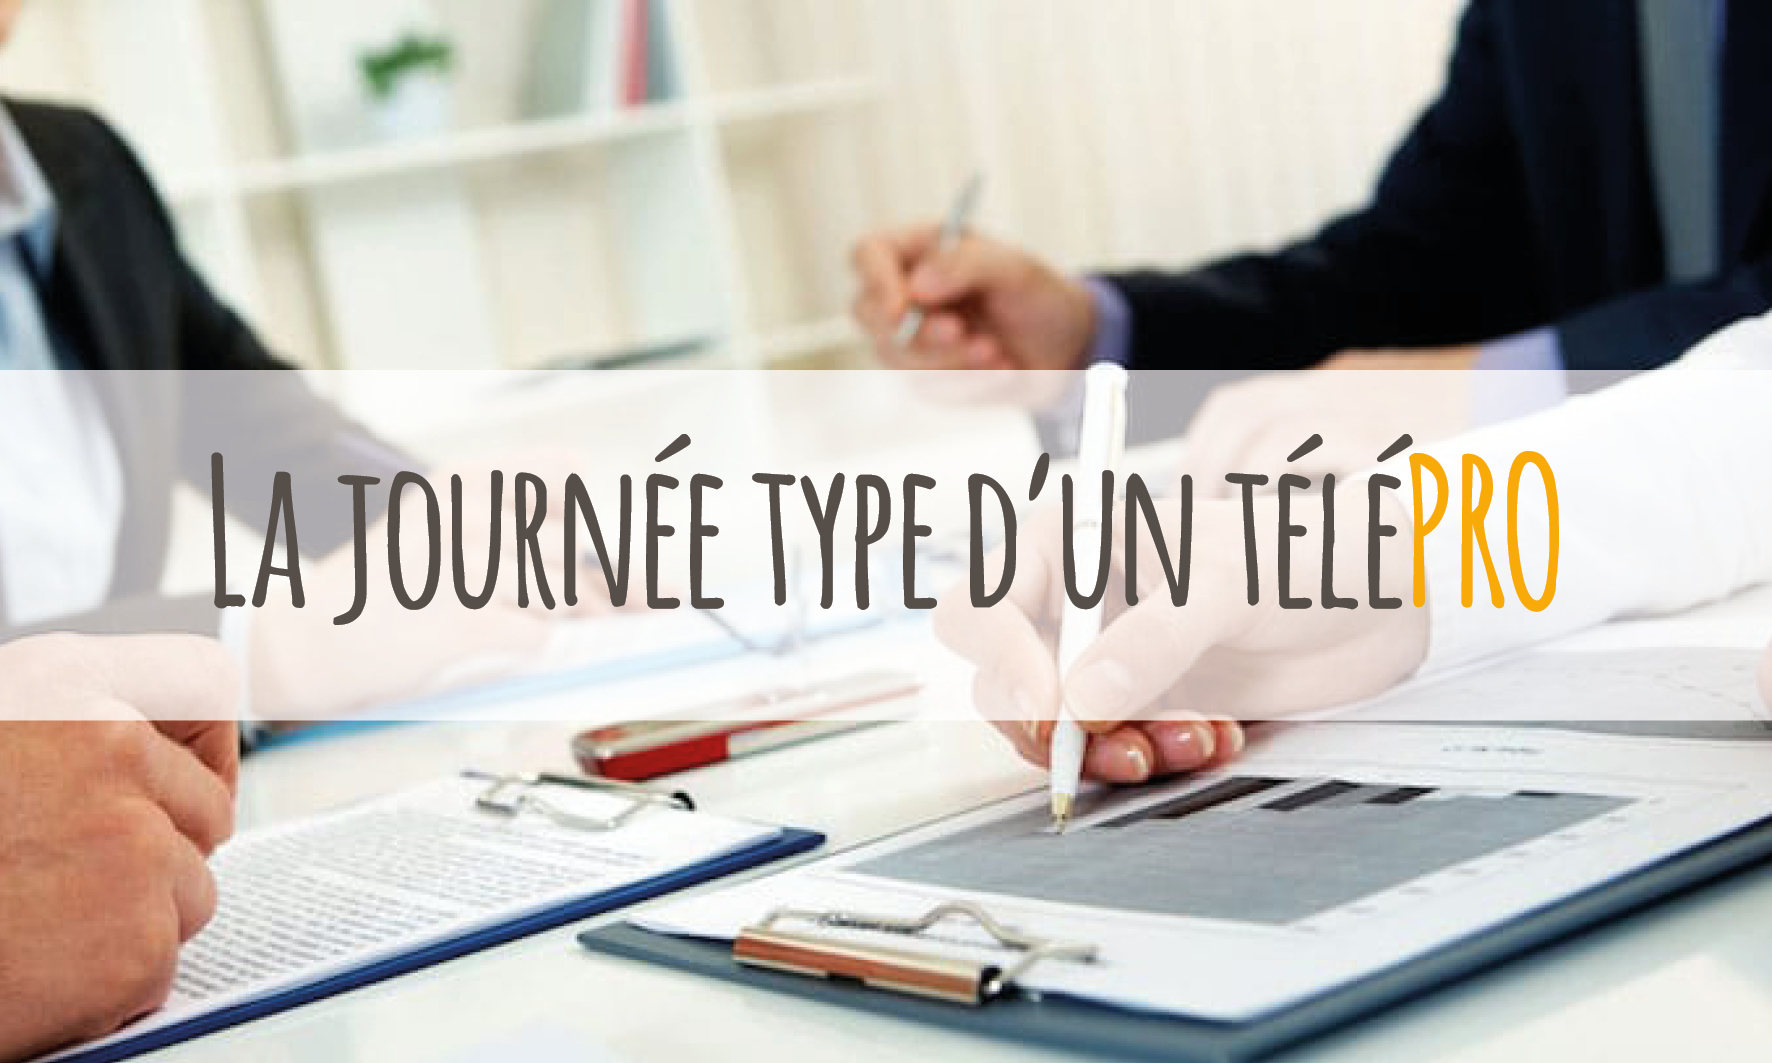 Téléprospecteur, Téléprospection, prospection, relations clients, satisfaction clients, Commercial, développement commercial, phoning